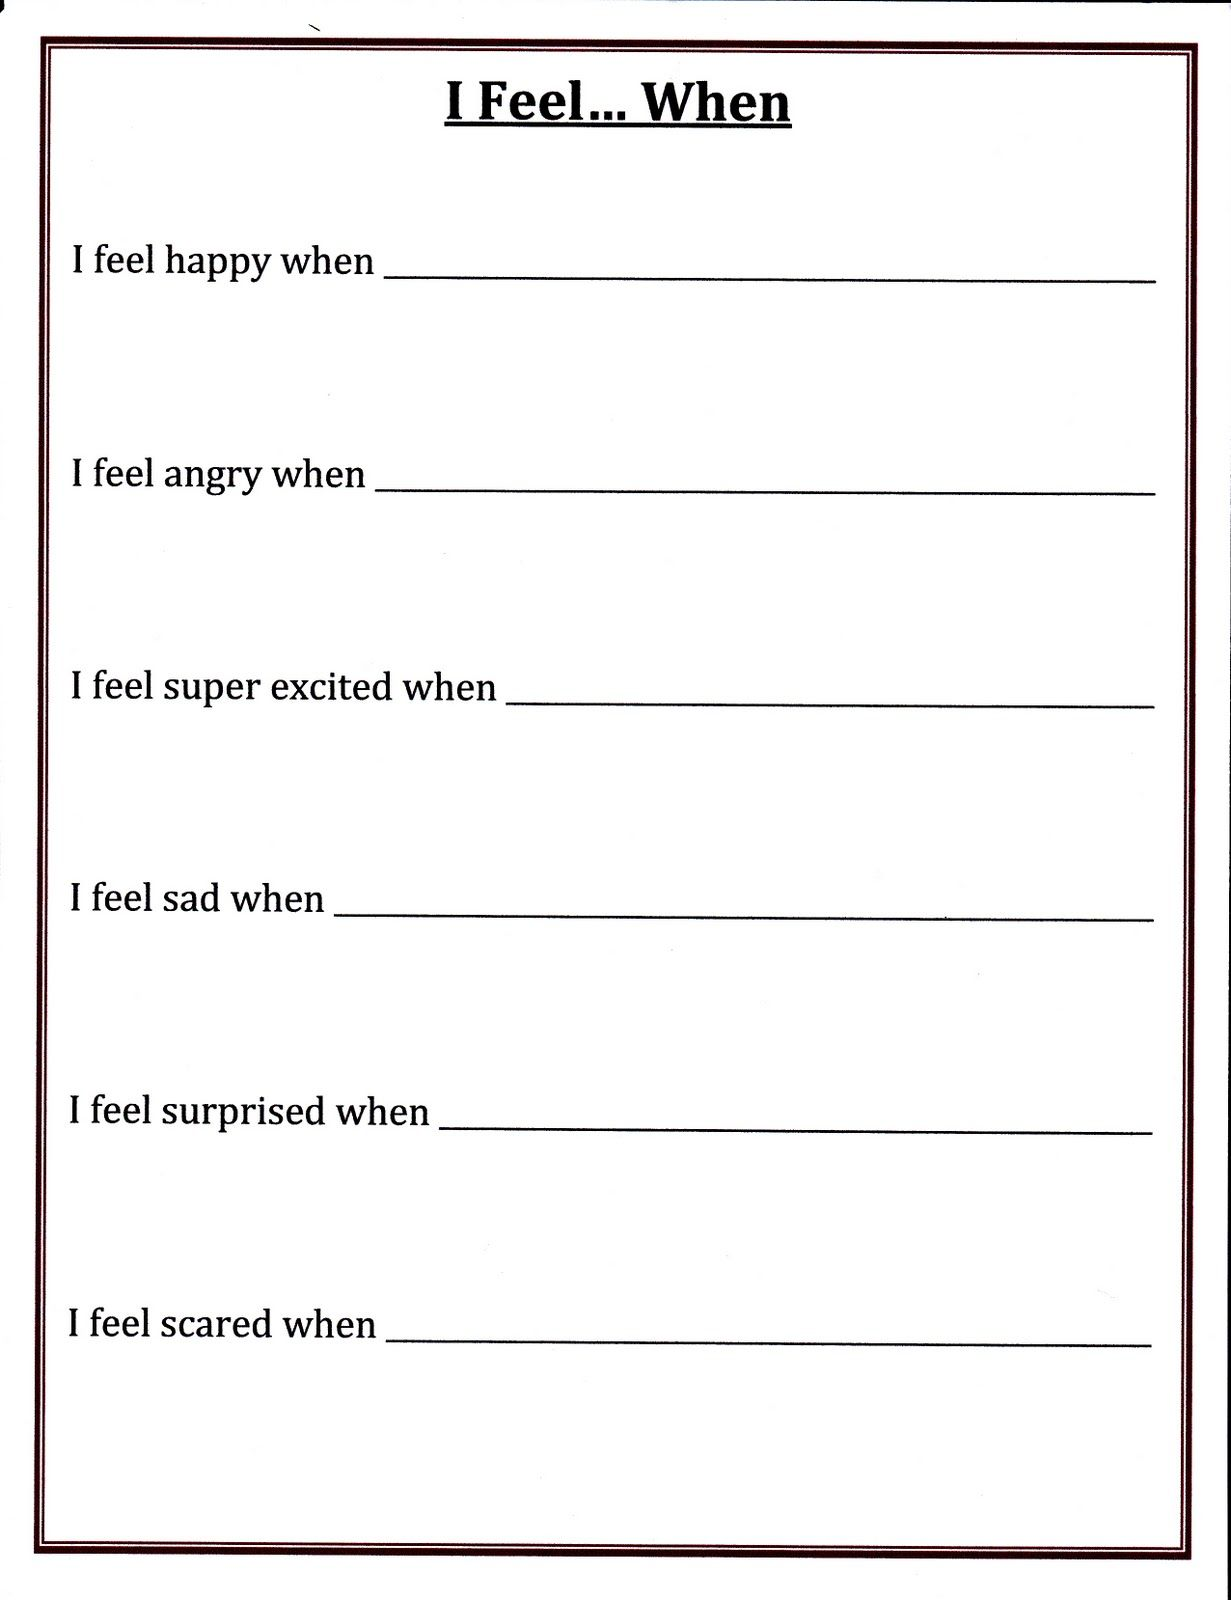 Worksheets Self Esteem Worksheets Adults expressing yourself children do not always understand the range of coping with stress worksheets bing images